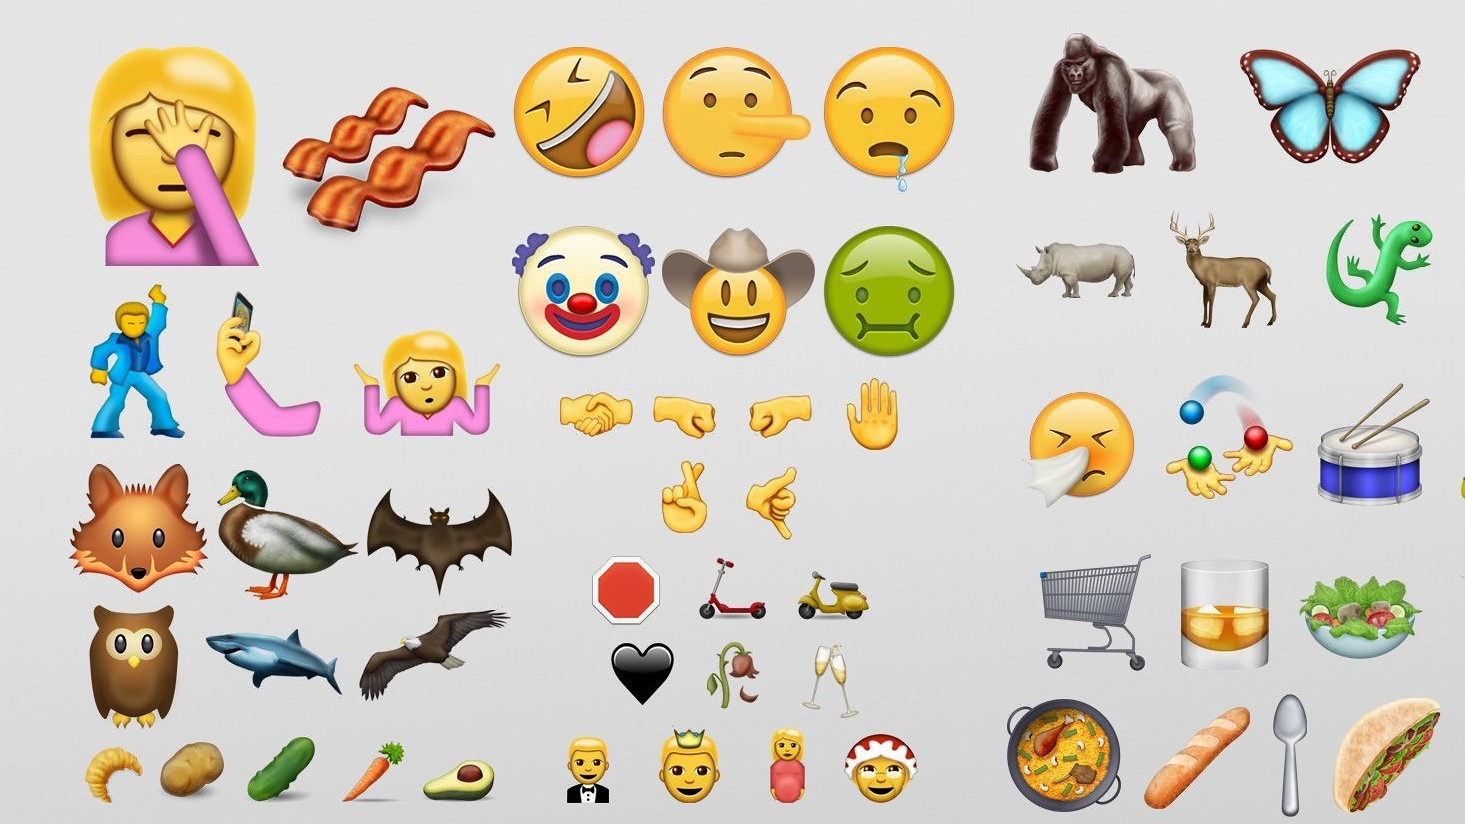 new-emoji-update-6-16